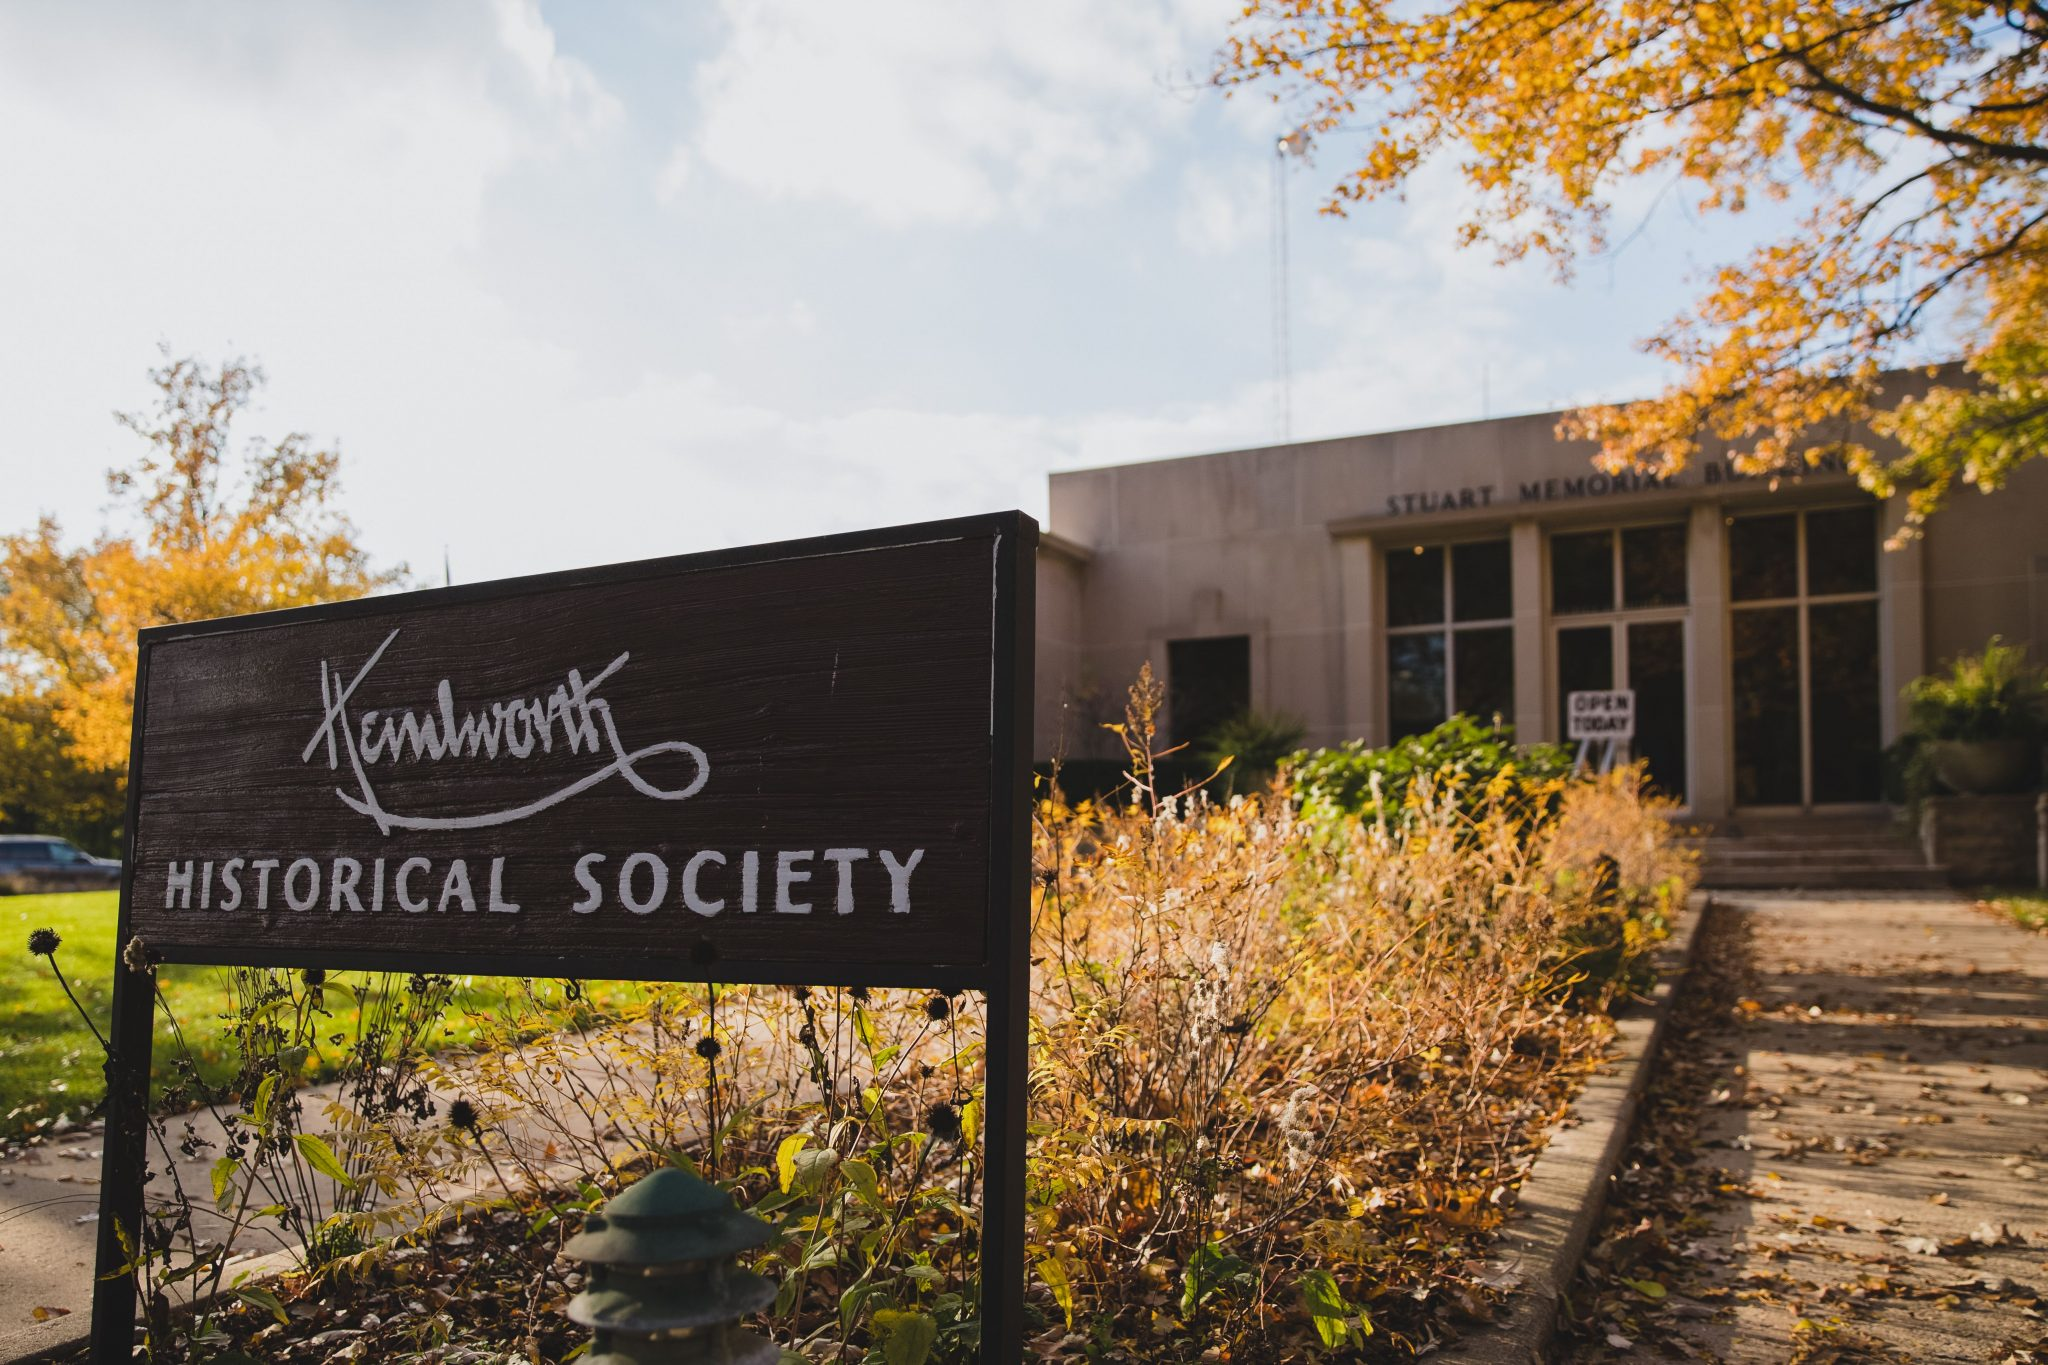 Kenilworth Historical Society